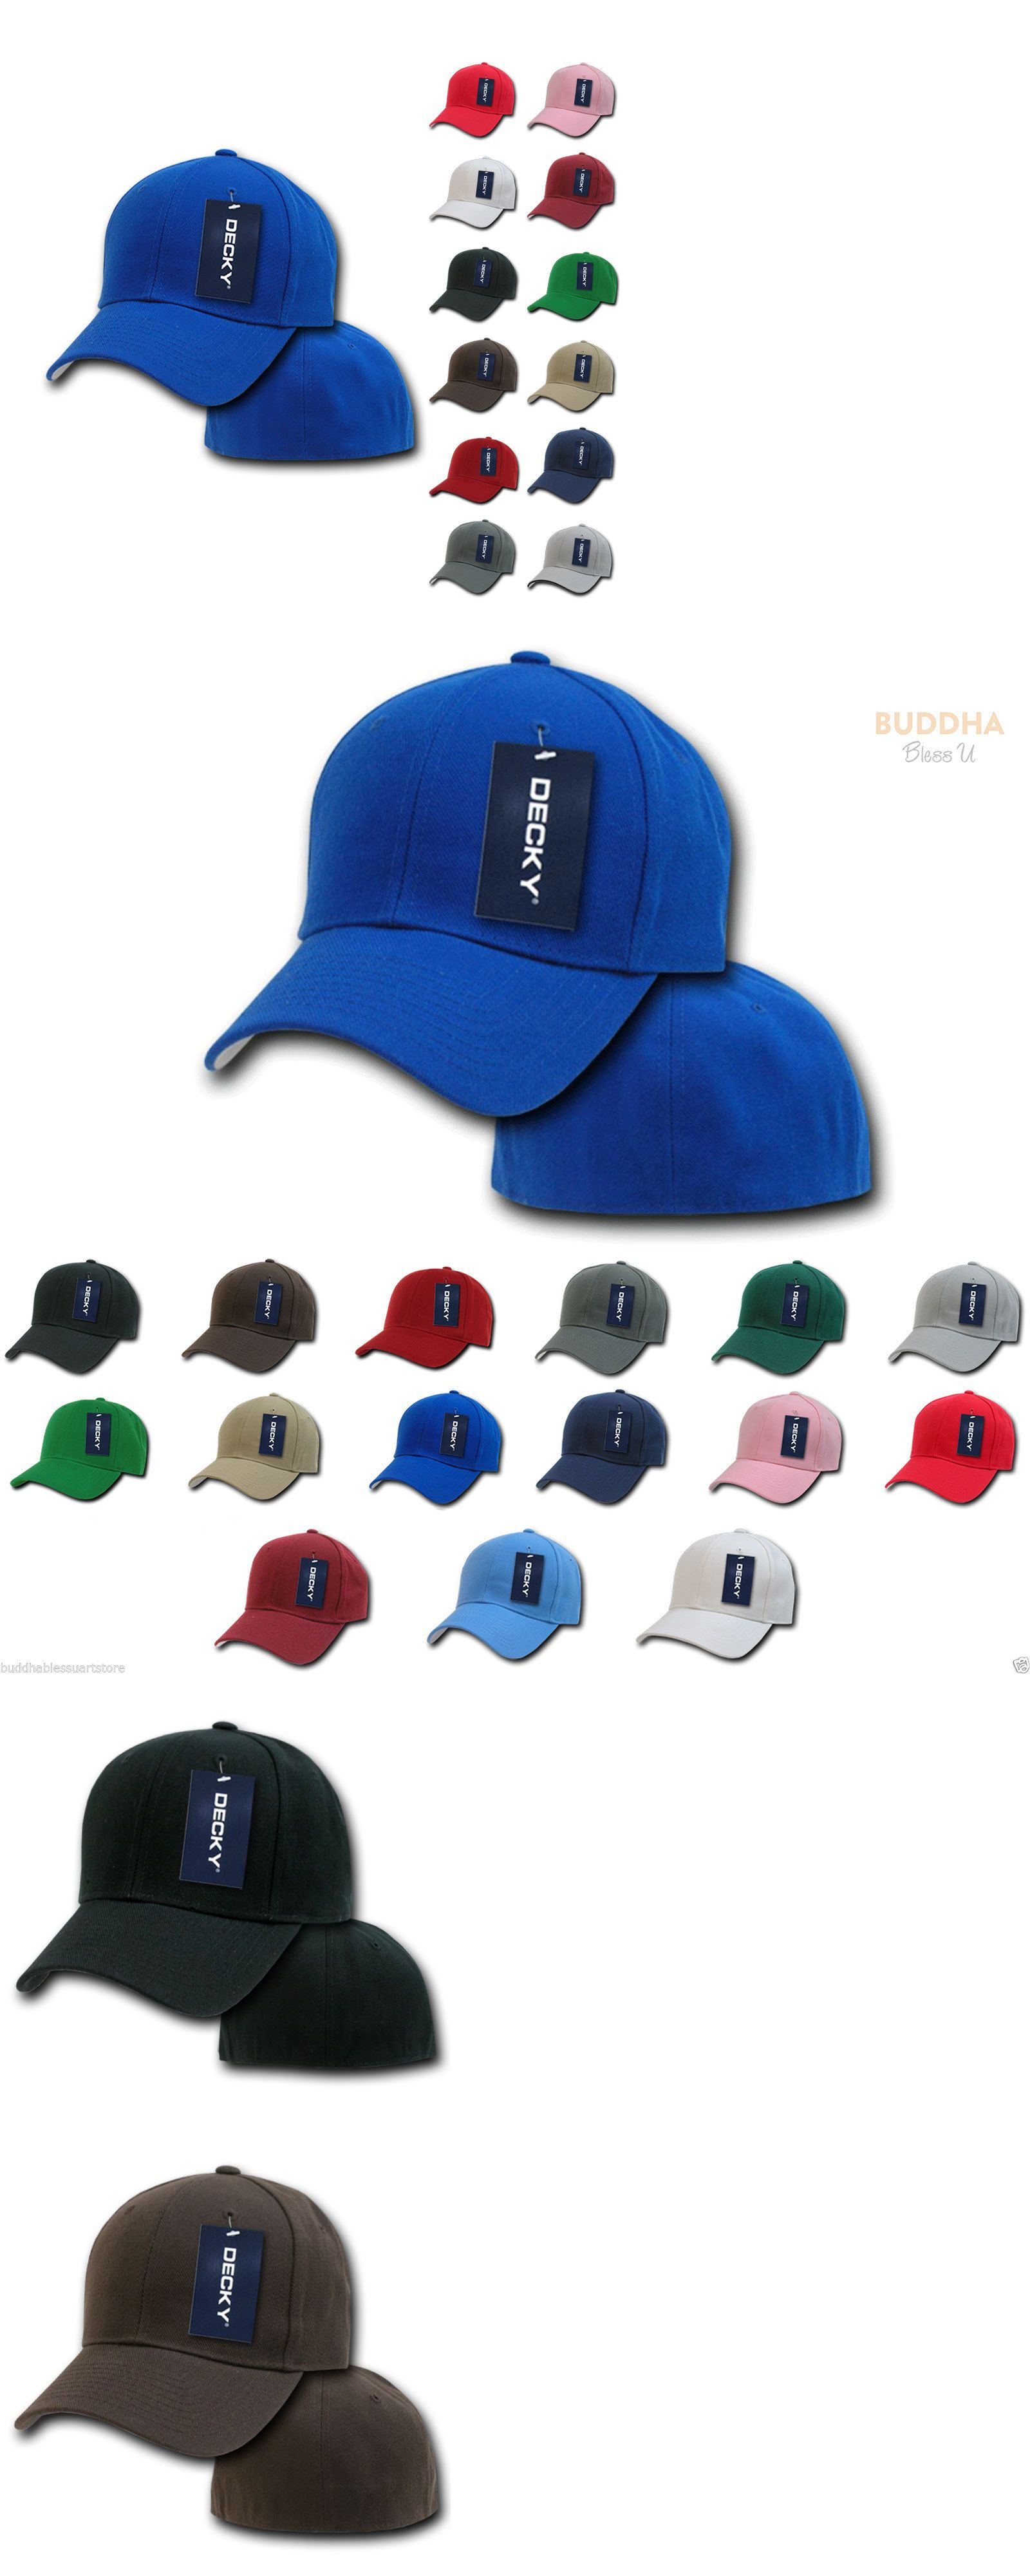 get cheap 2a288 f2d3e Mens Accessories 45053  1 Dozen Decky Plain Fitted Curved Bill Baseball  Hats Caps Wholesale Lot -  BUY IT NOW ONLY   69.99 on  eBay  accessories   dozen ...